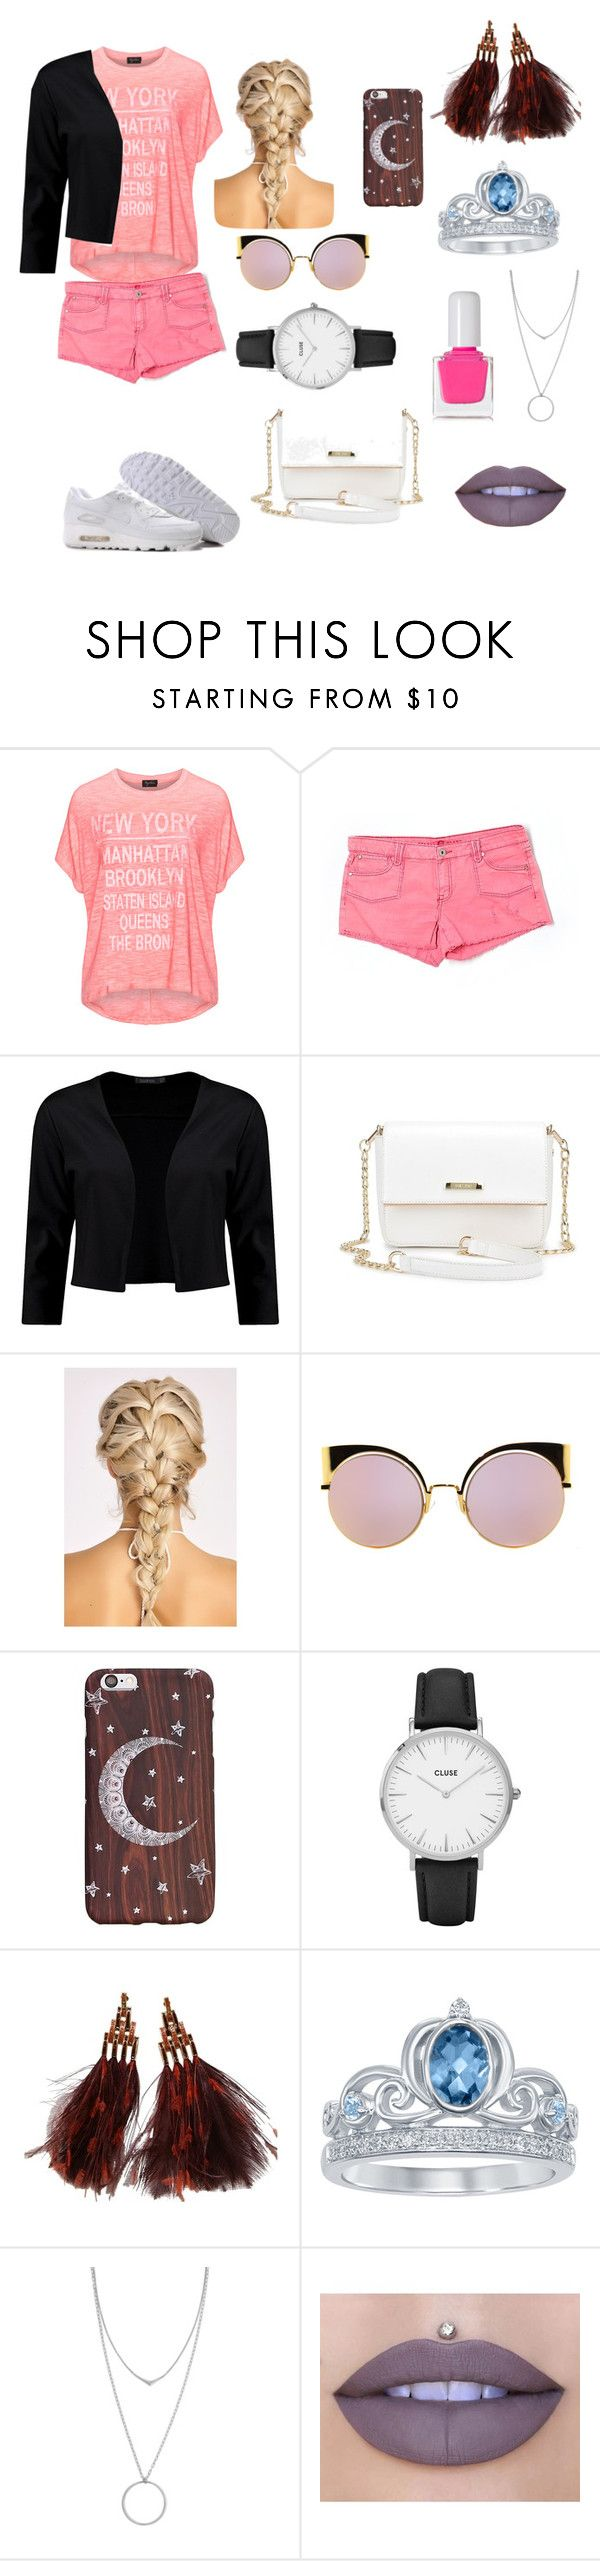 """Untitled #79"" by iuliamariacristea ❤ liked on Polyvore featuring Replace, Velvet Heart, NIKE, Boohoo, Fendi, CLUSE, Louis Vuitton, Disney, Botkier and Jeffree Star"